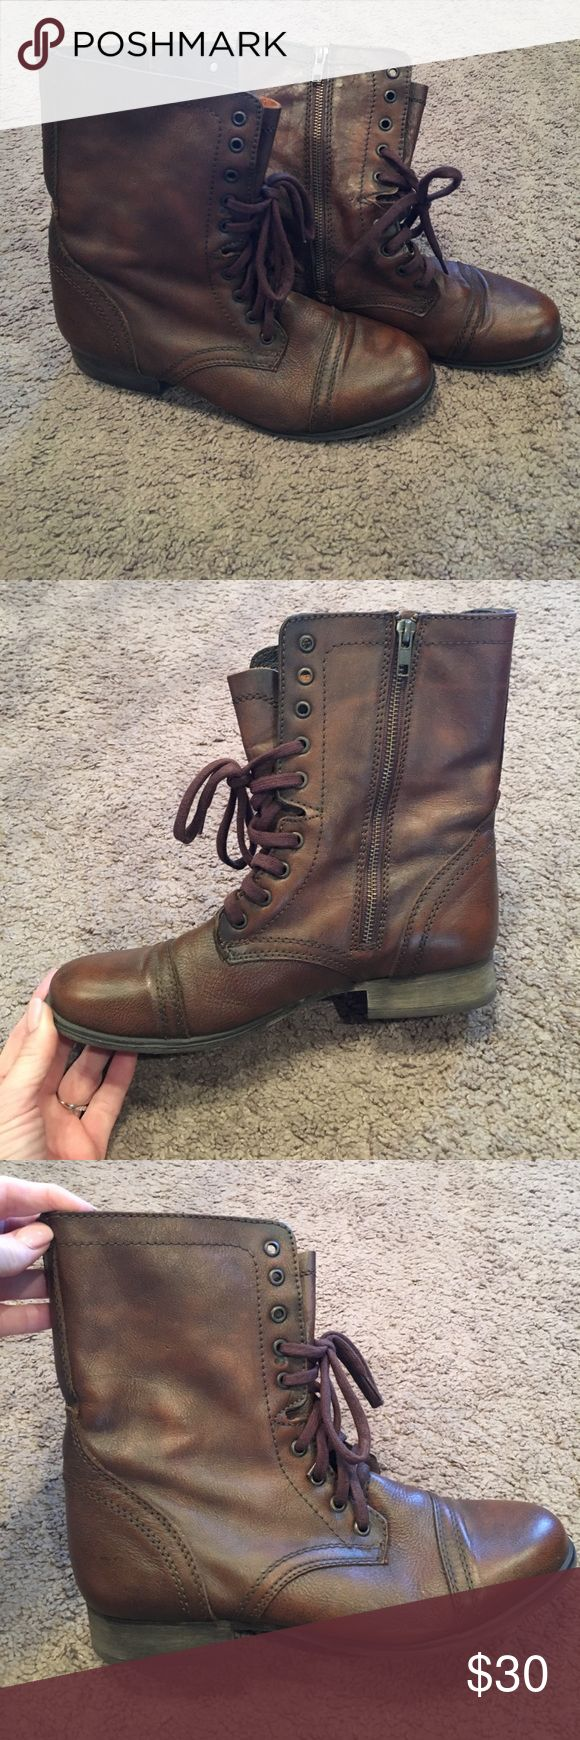 Steve Madden Brown combat boots Super cute Steve Madden Combat boots. Size 10 great shape. Had zippers on side of shoes with brown laces. Super cute and comfy! Steve Madden Shoes Combat & Moto Boots